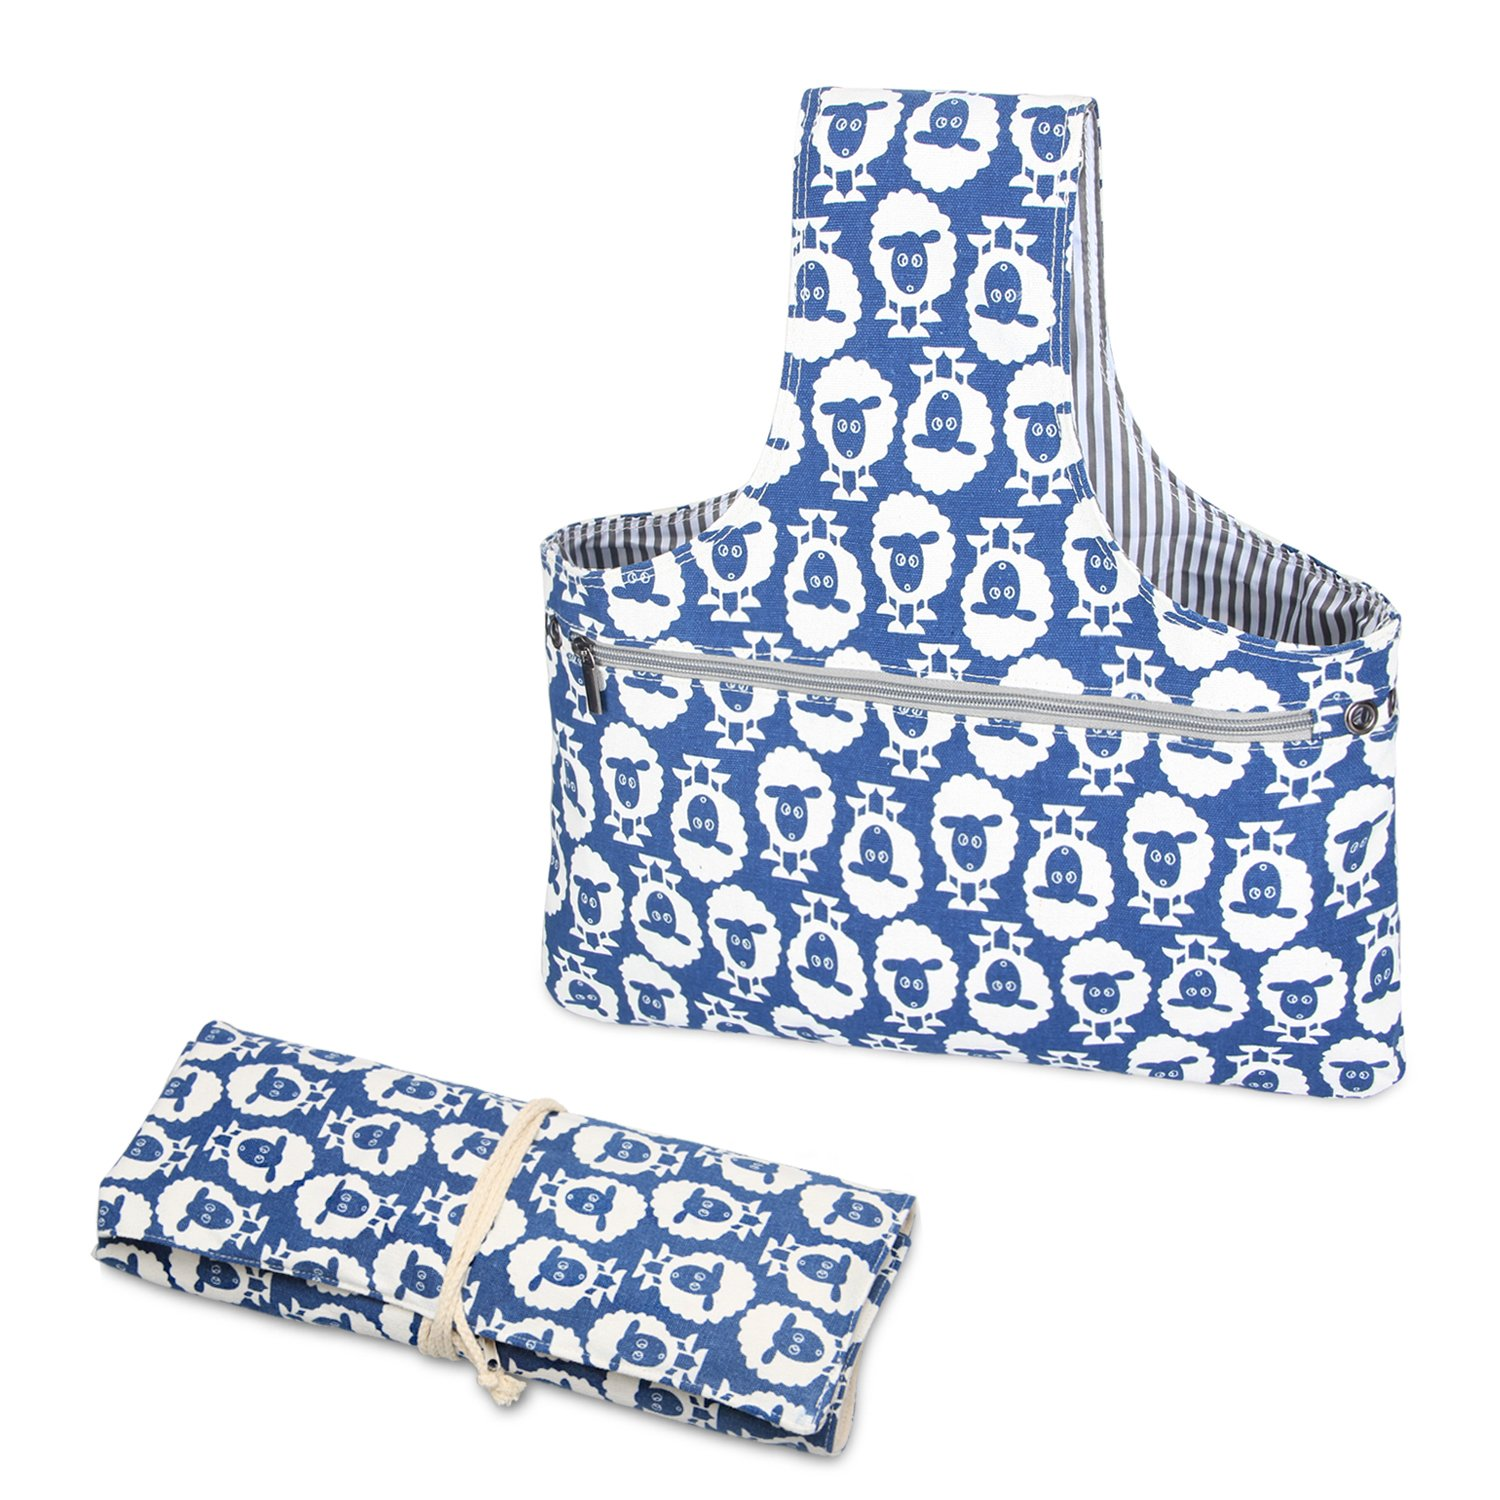 Teamoy 2 Pack Canvas Knitting Tote Bag and Knitting Needles Roll Holder for Yarn, Knitting Needles(14 Inches), Supplies and More, Perfect Size for Knitting on The Go(Large, Sheep)